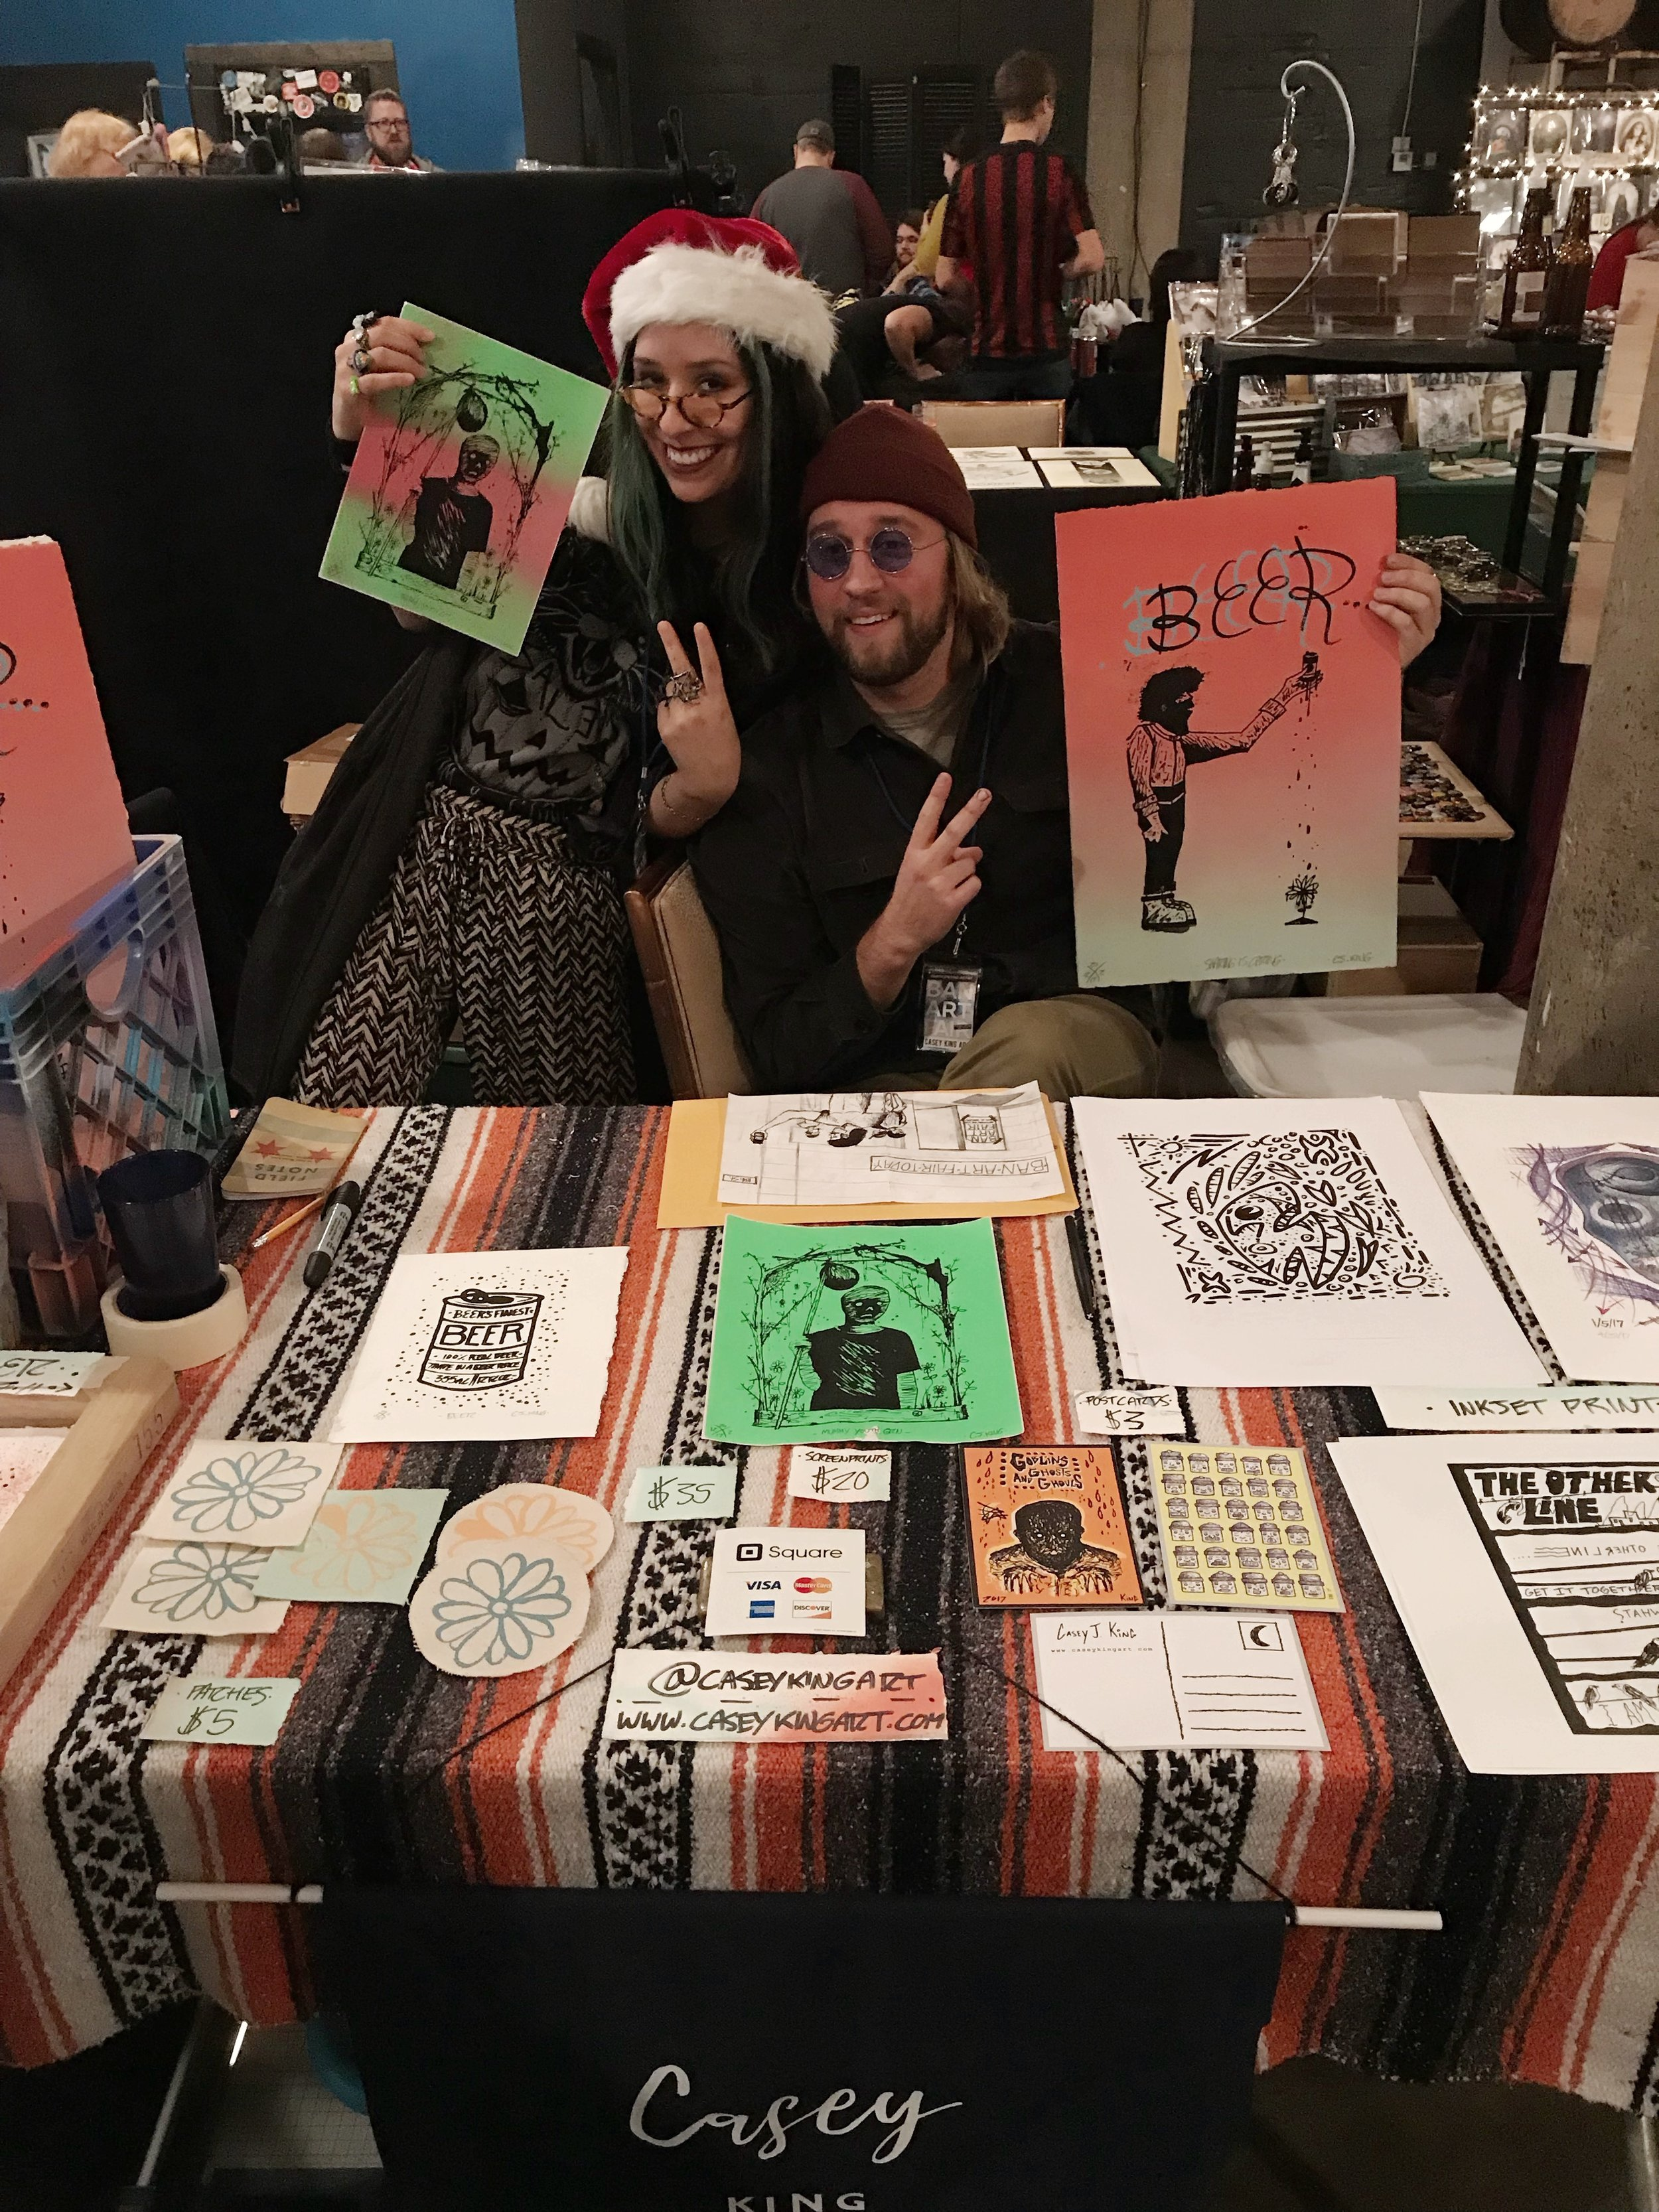 "Here is artist Sophia Rapata and I during Ban Art Fair 2017 at 18th Street Brewery. I'm holding a new screenprint I produced for the event. Sophia is holding a screenprint of my ""Mummy Youth"" graphic and being groovy as usual. My first big event setup as an independent artist and I managed to sell a few screenprints by the end of the day. To the folks who purchased something...thanks! You made my day.  - Casey"